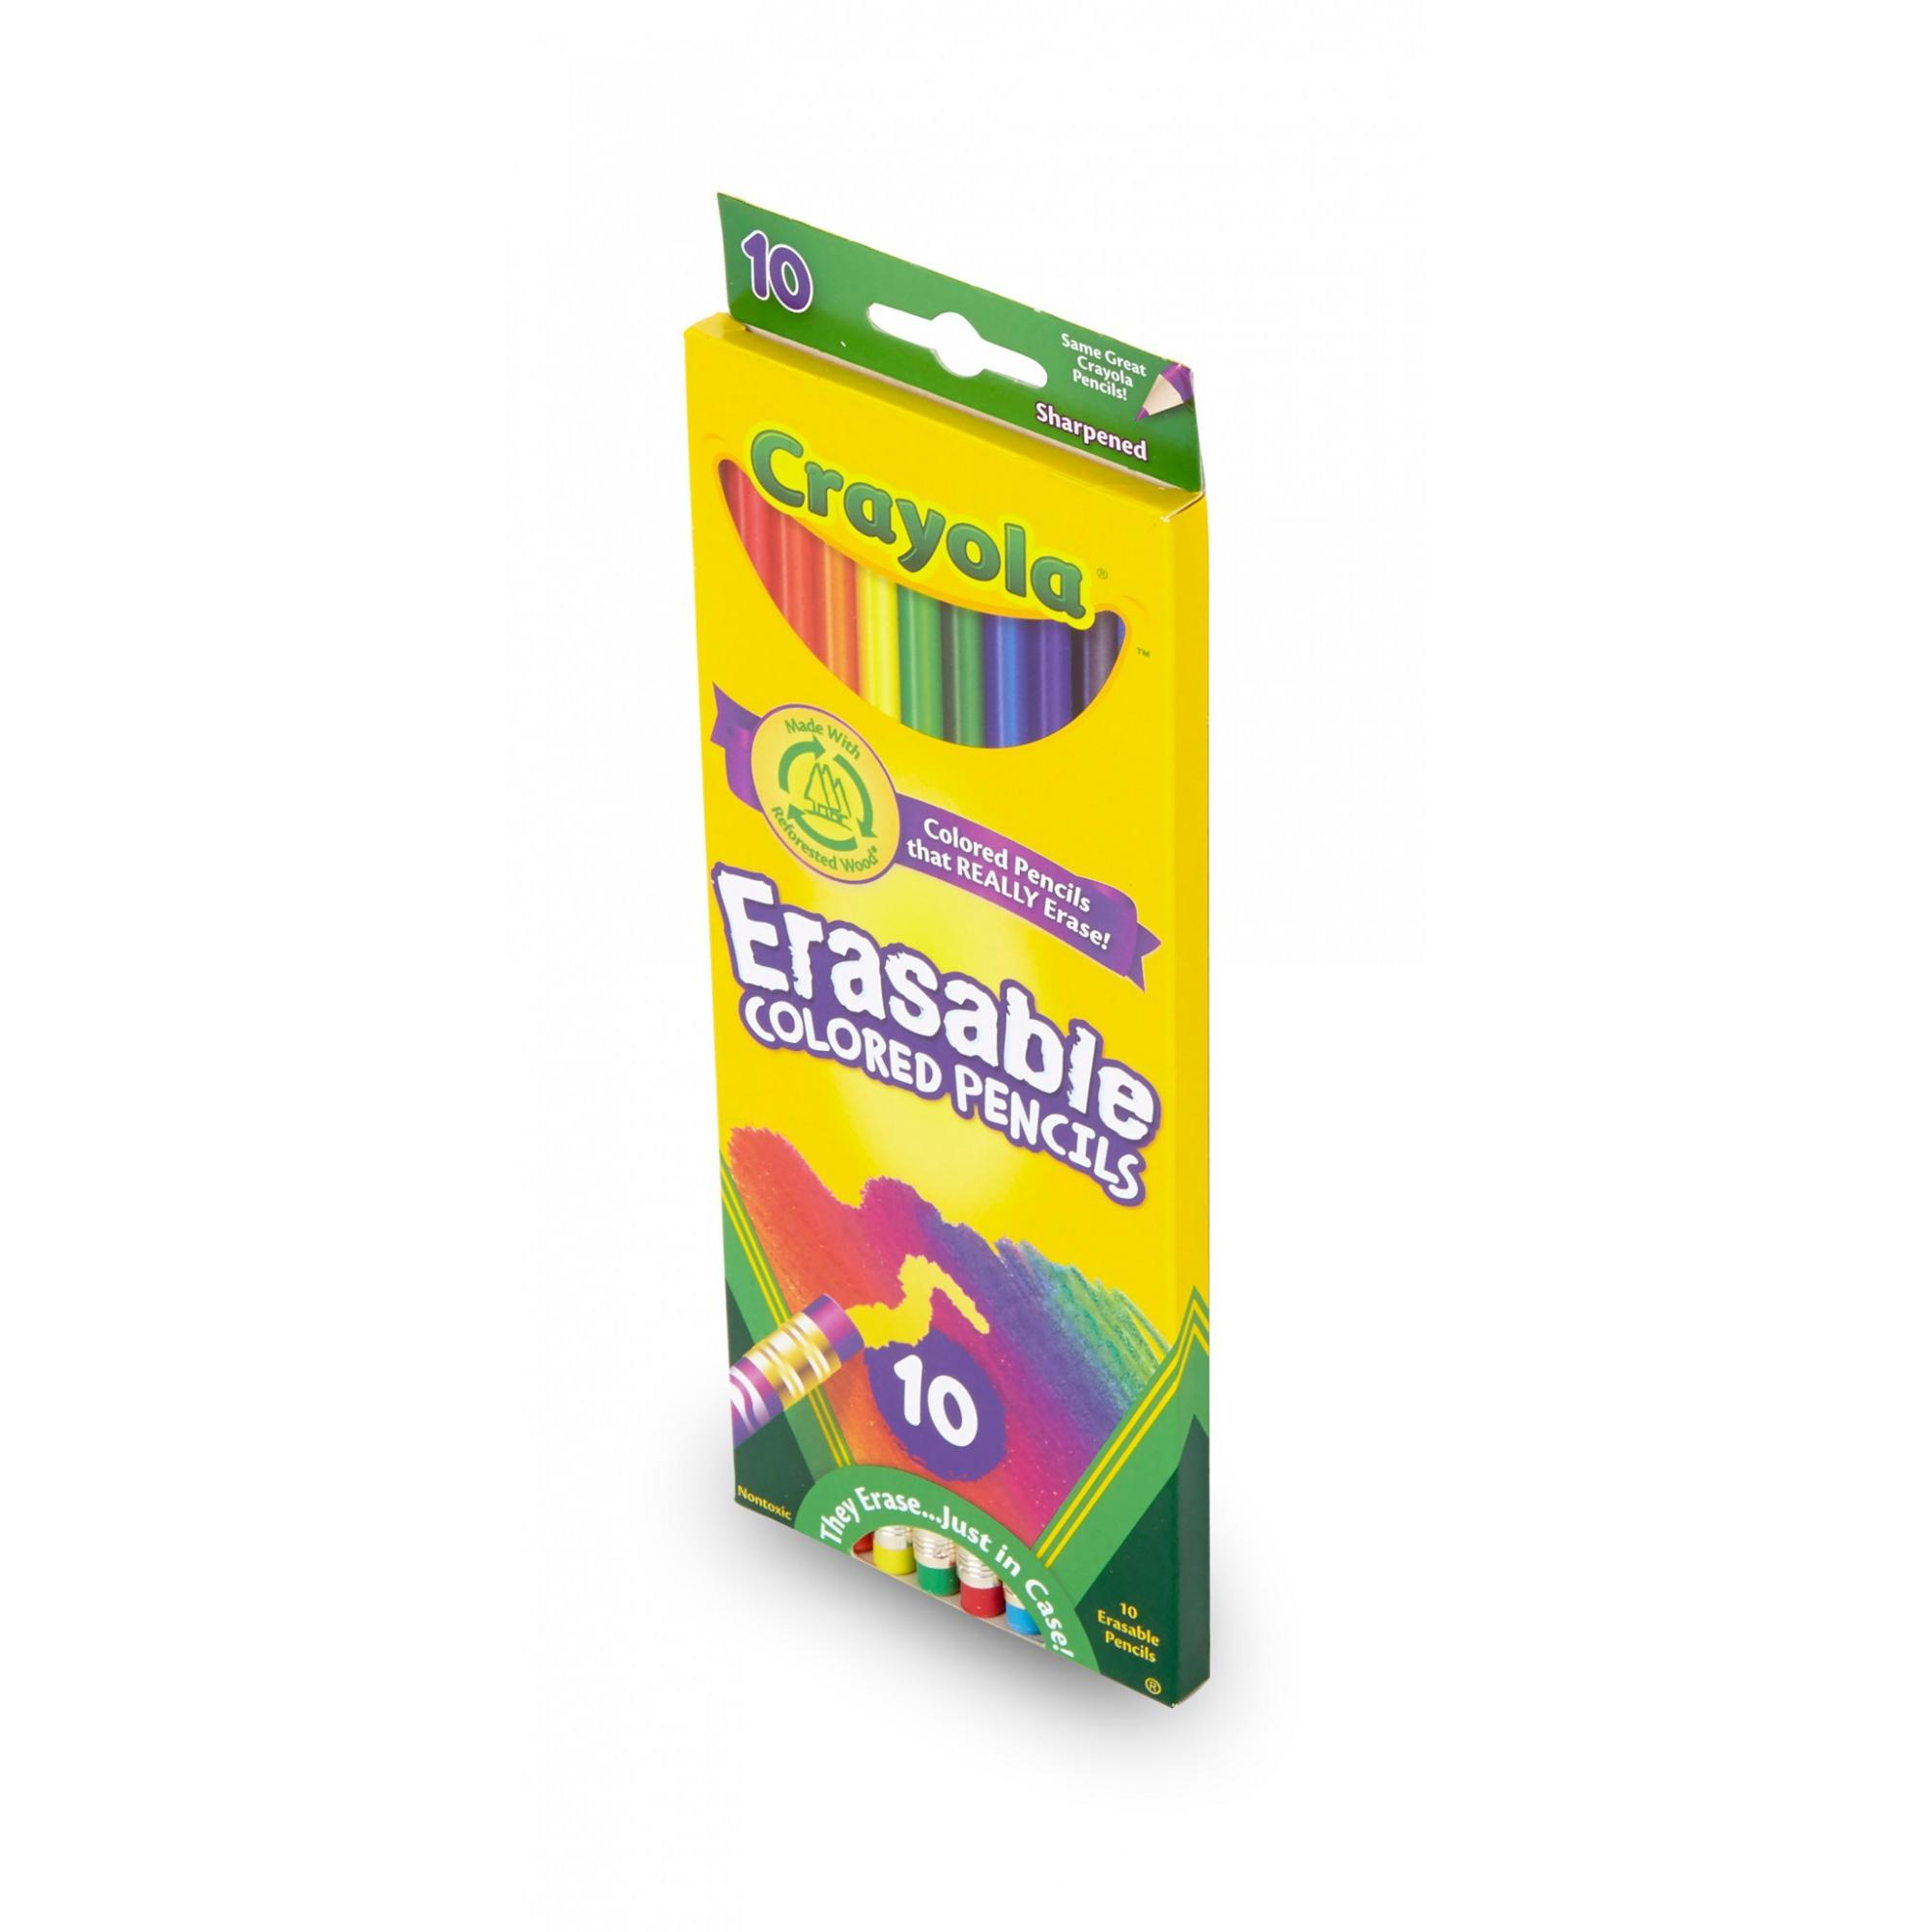 Crayola Erasable Colored Pencils, 10 Count